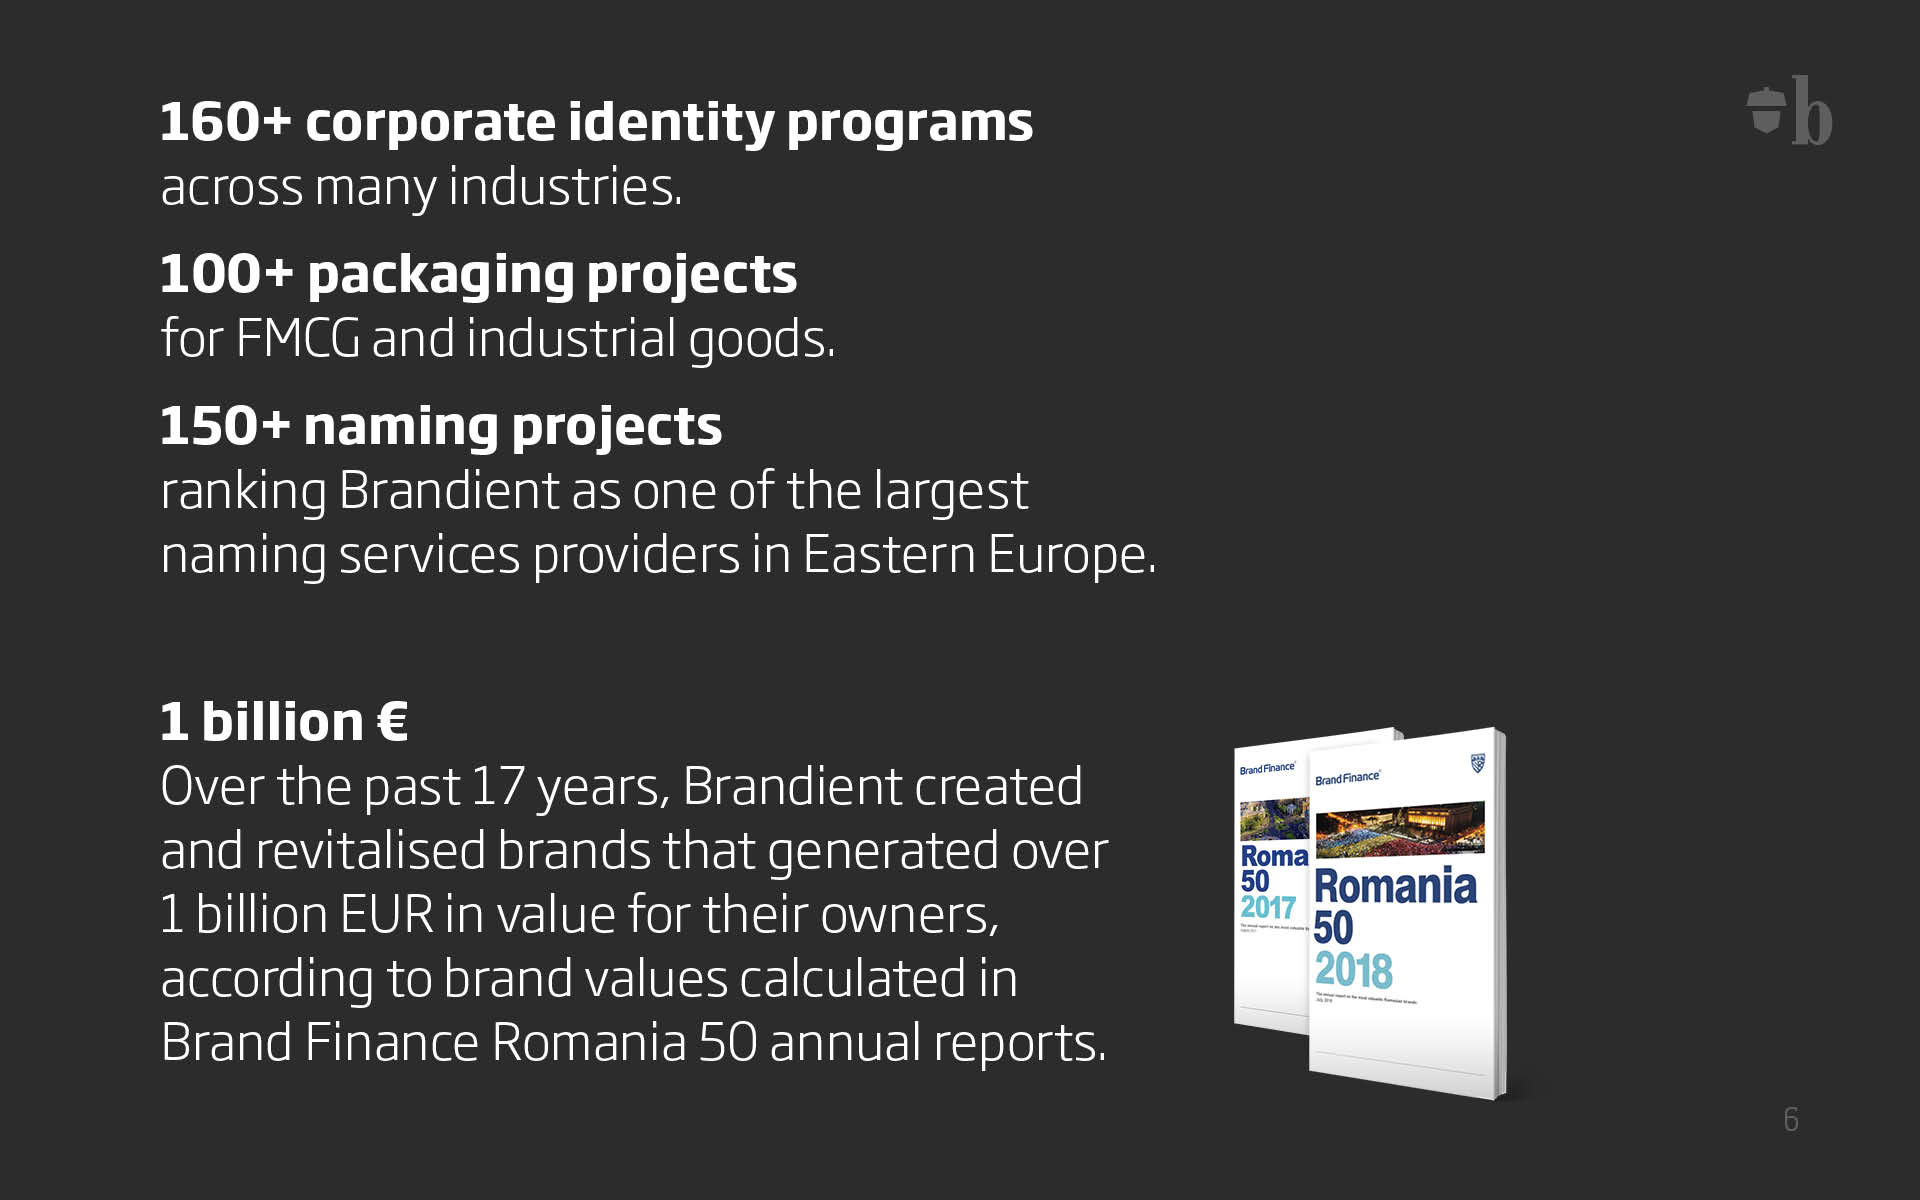 160+ corporate identity programs across many industries. 100+ packaging projects for FMCG and industrial goods. 150+ naming projects,ranking Brandient as one of the largest naming services providers in Eastern Europe. 1 billion €: Over the past 17 years, Brandient created and revitalised brands that generated over 1 billion EUR in value for their owners, according to brand values calculated in Brand Finance Romania 50 annual reports.